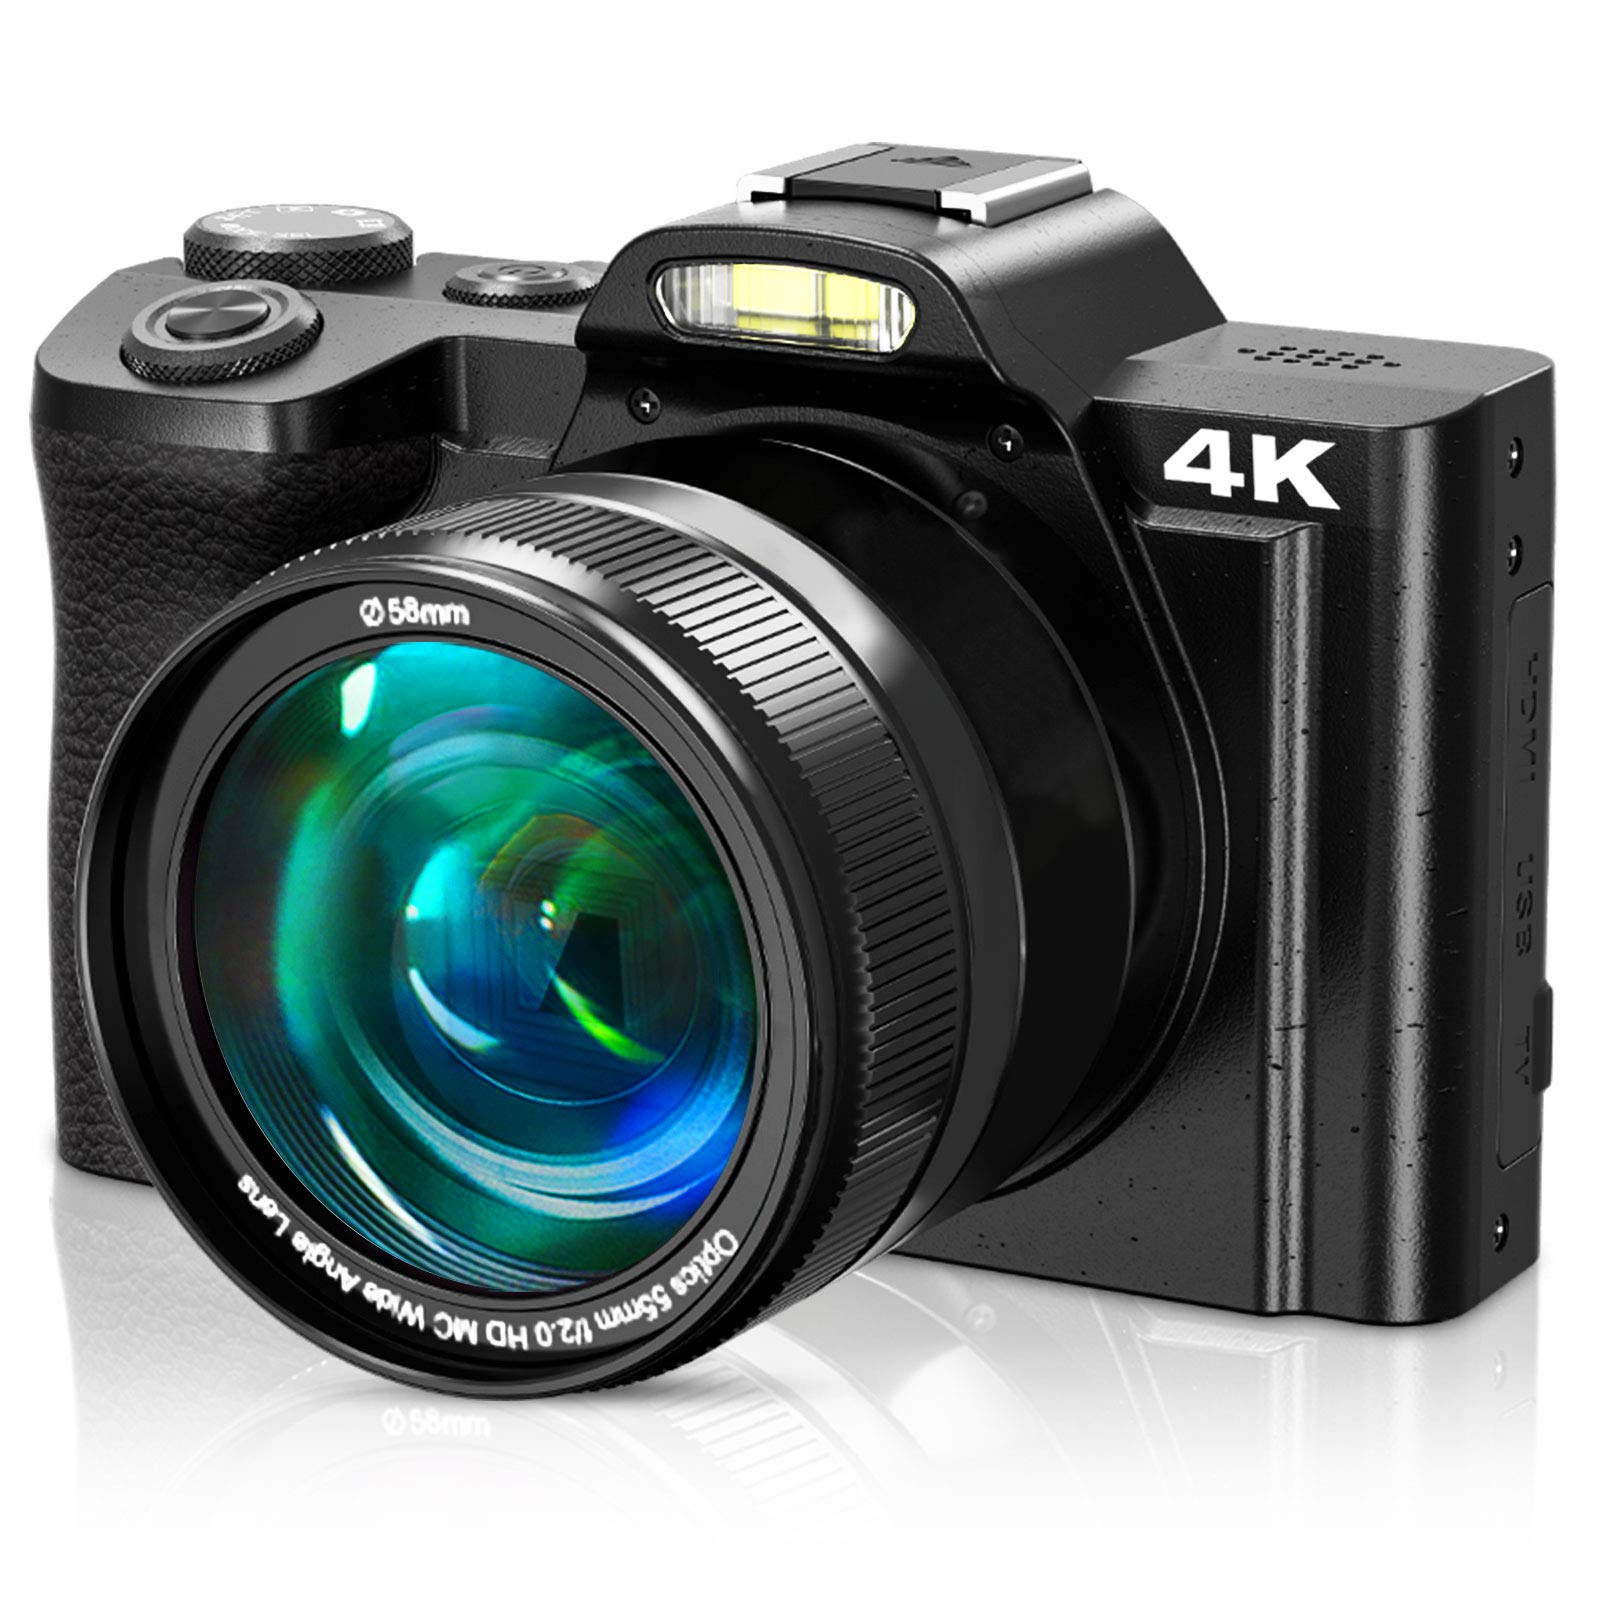 4K Digital Camera, Video Camera Camcorder VideoSky UHD 48MP with WiFi 3.5 in Touch Screen 16 X Digital Zoom Wide Angle Lens YouTube Vlogging Cameras